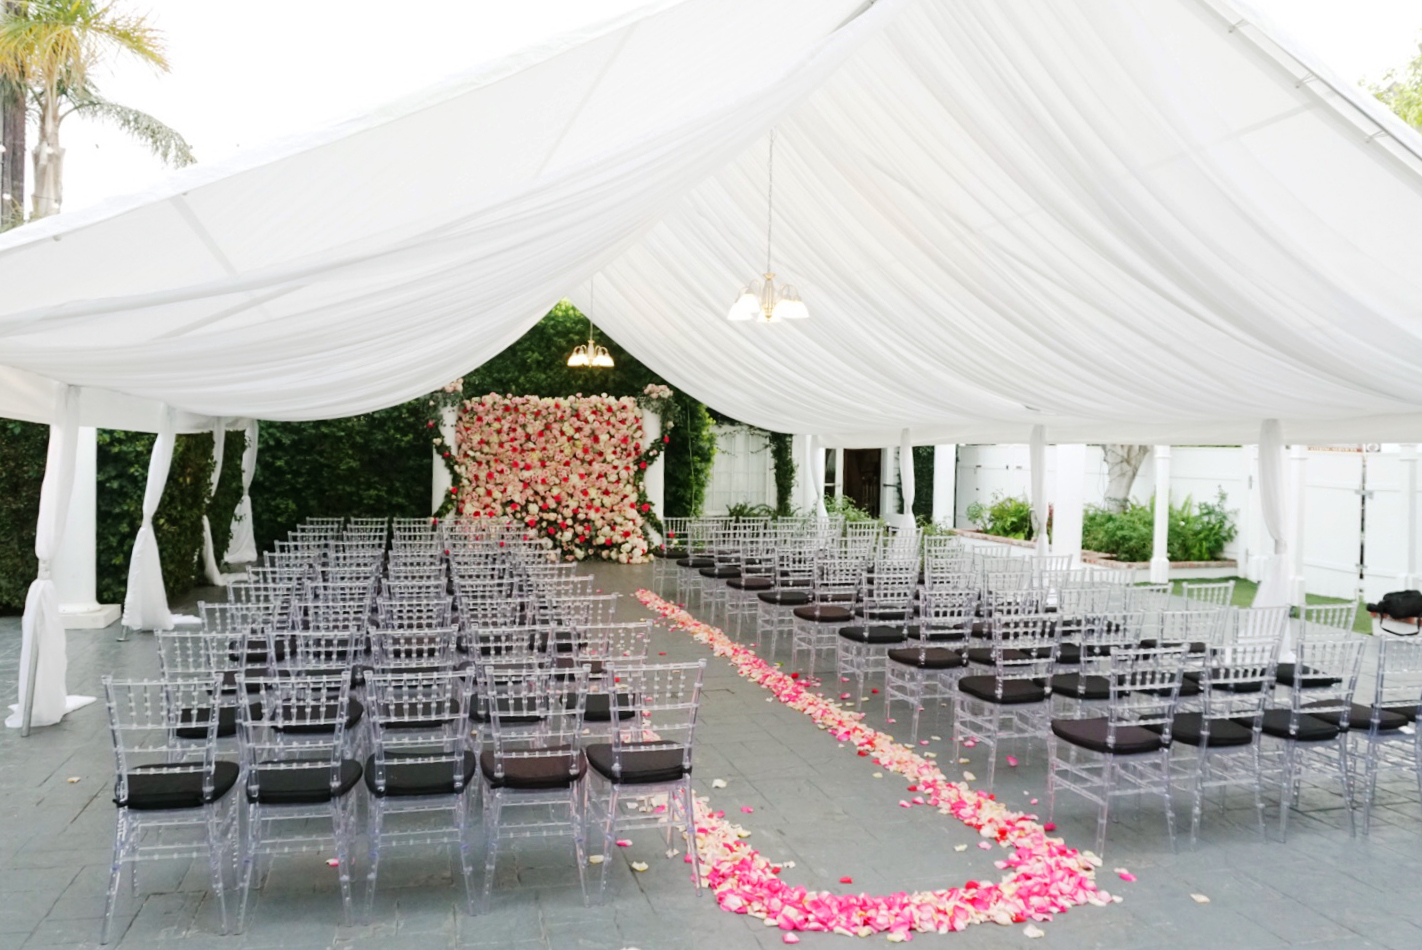 Draped Canopy - 30ft x 40ft Outdoor canopy with draping and chandeliers(Waterproof)$800